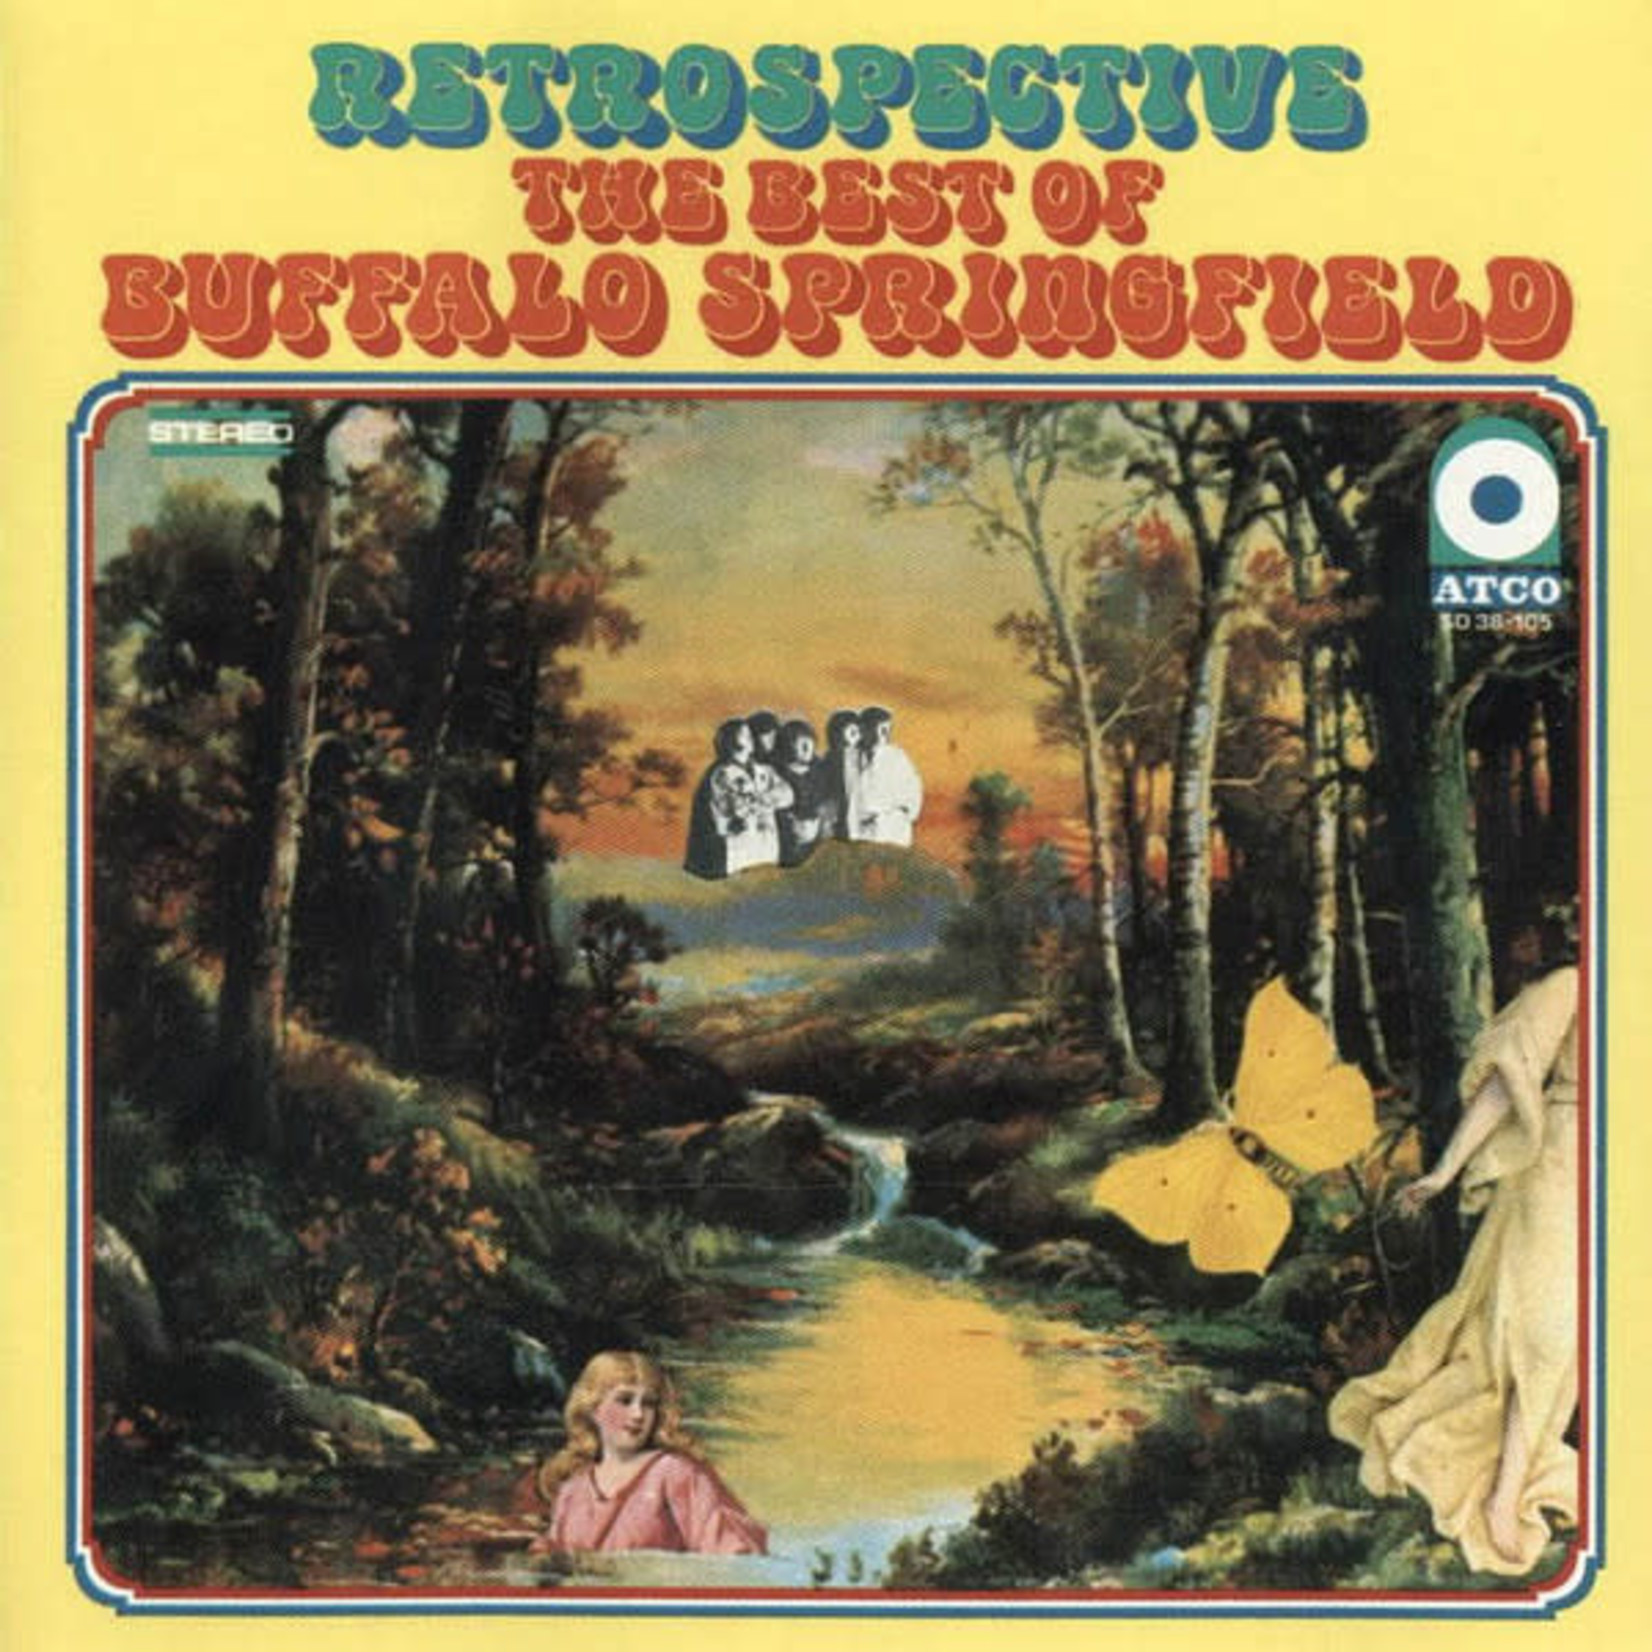 [Vintage] Buffalo Springfield: Retrospective (or The Best of)